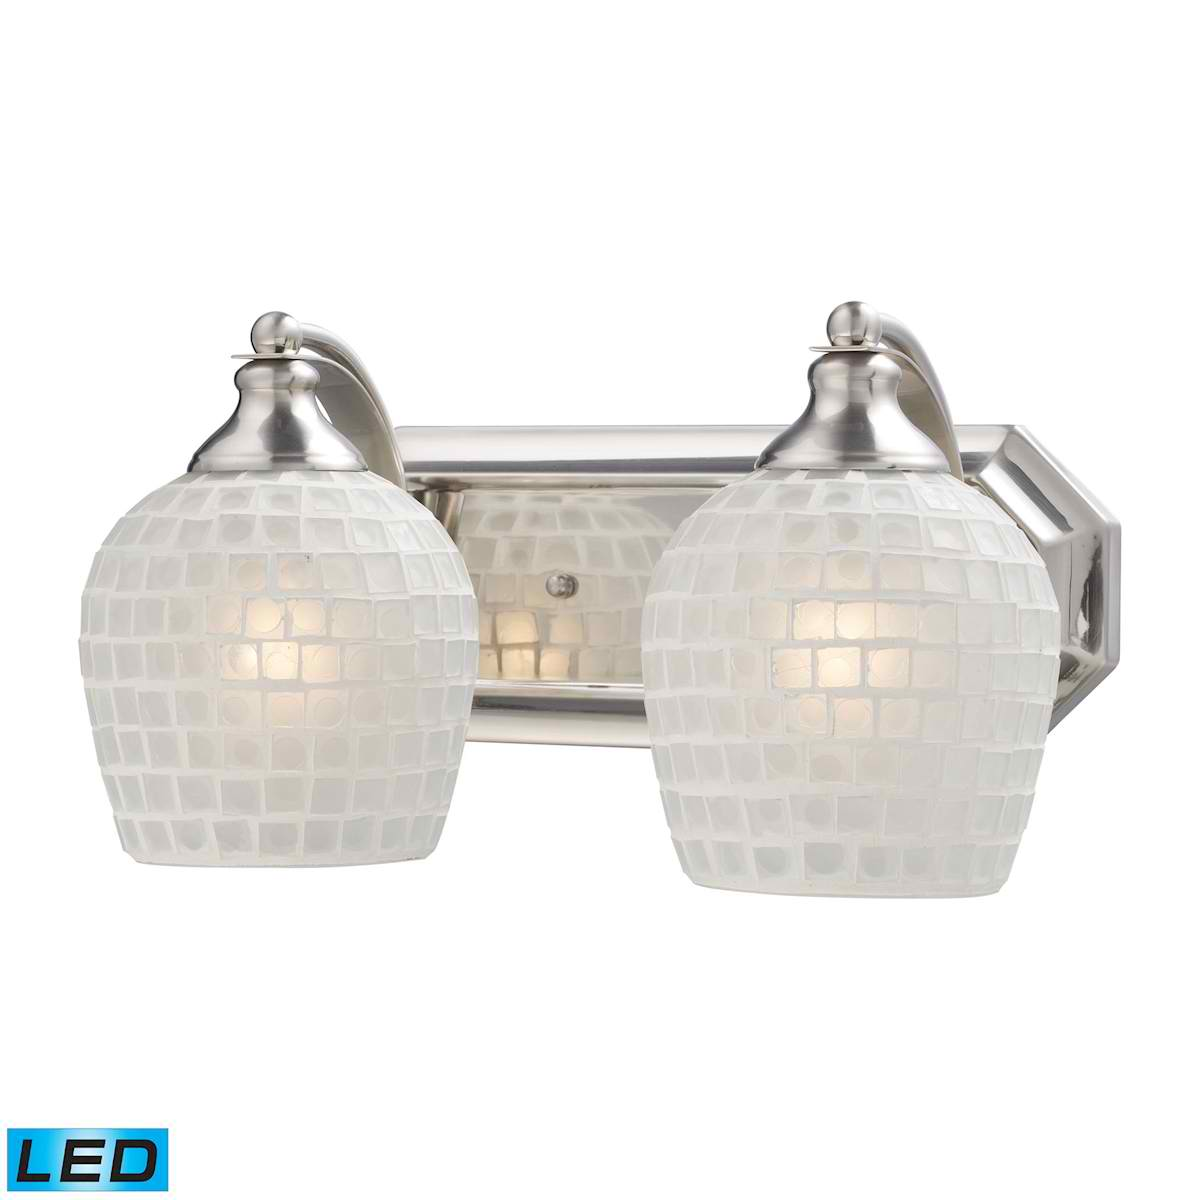 2 Light Vanity in Satin Nickel and White Mosaic Glass - LED, 800 Lumens (1600 Lumens Total) with Full Scale